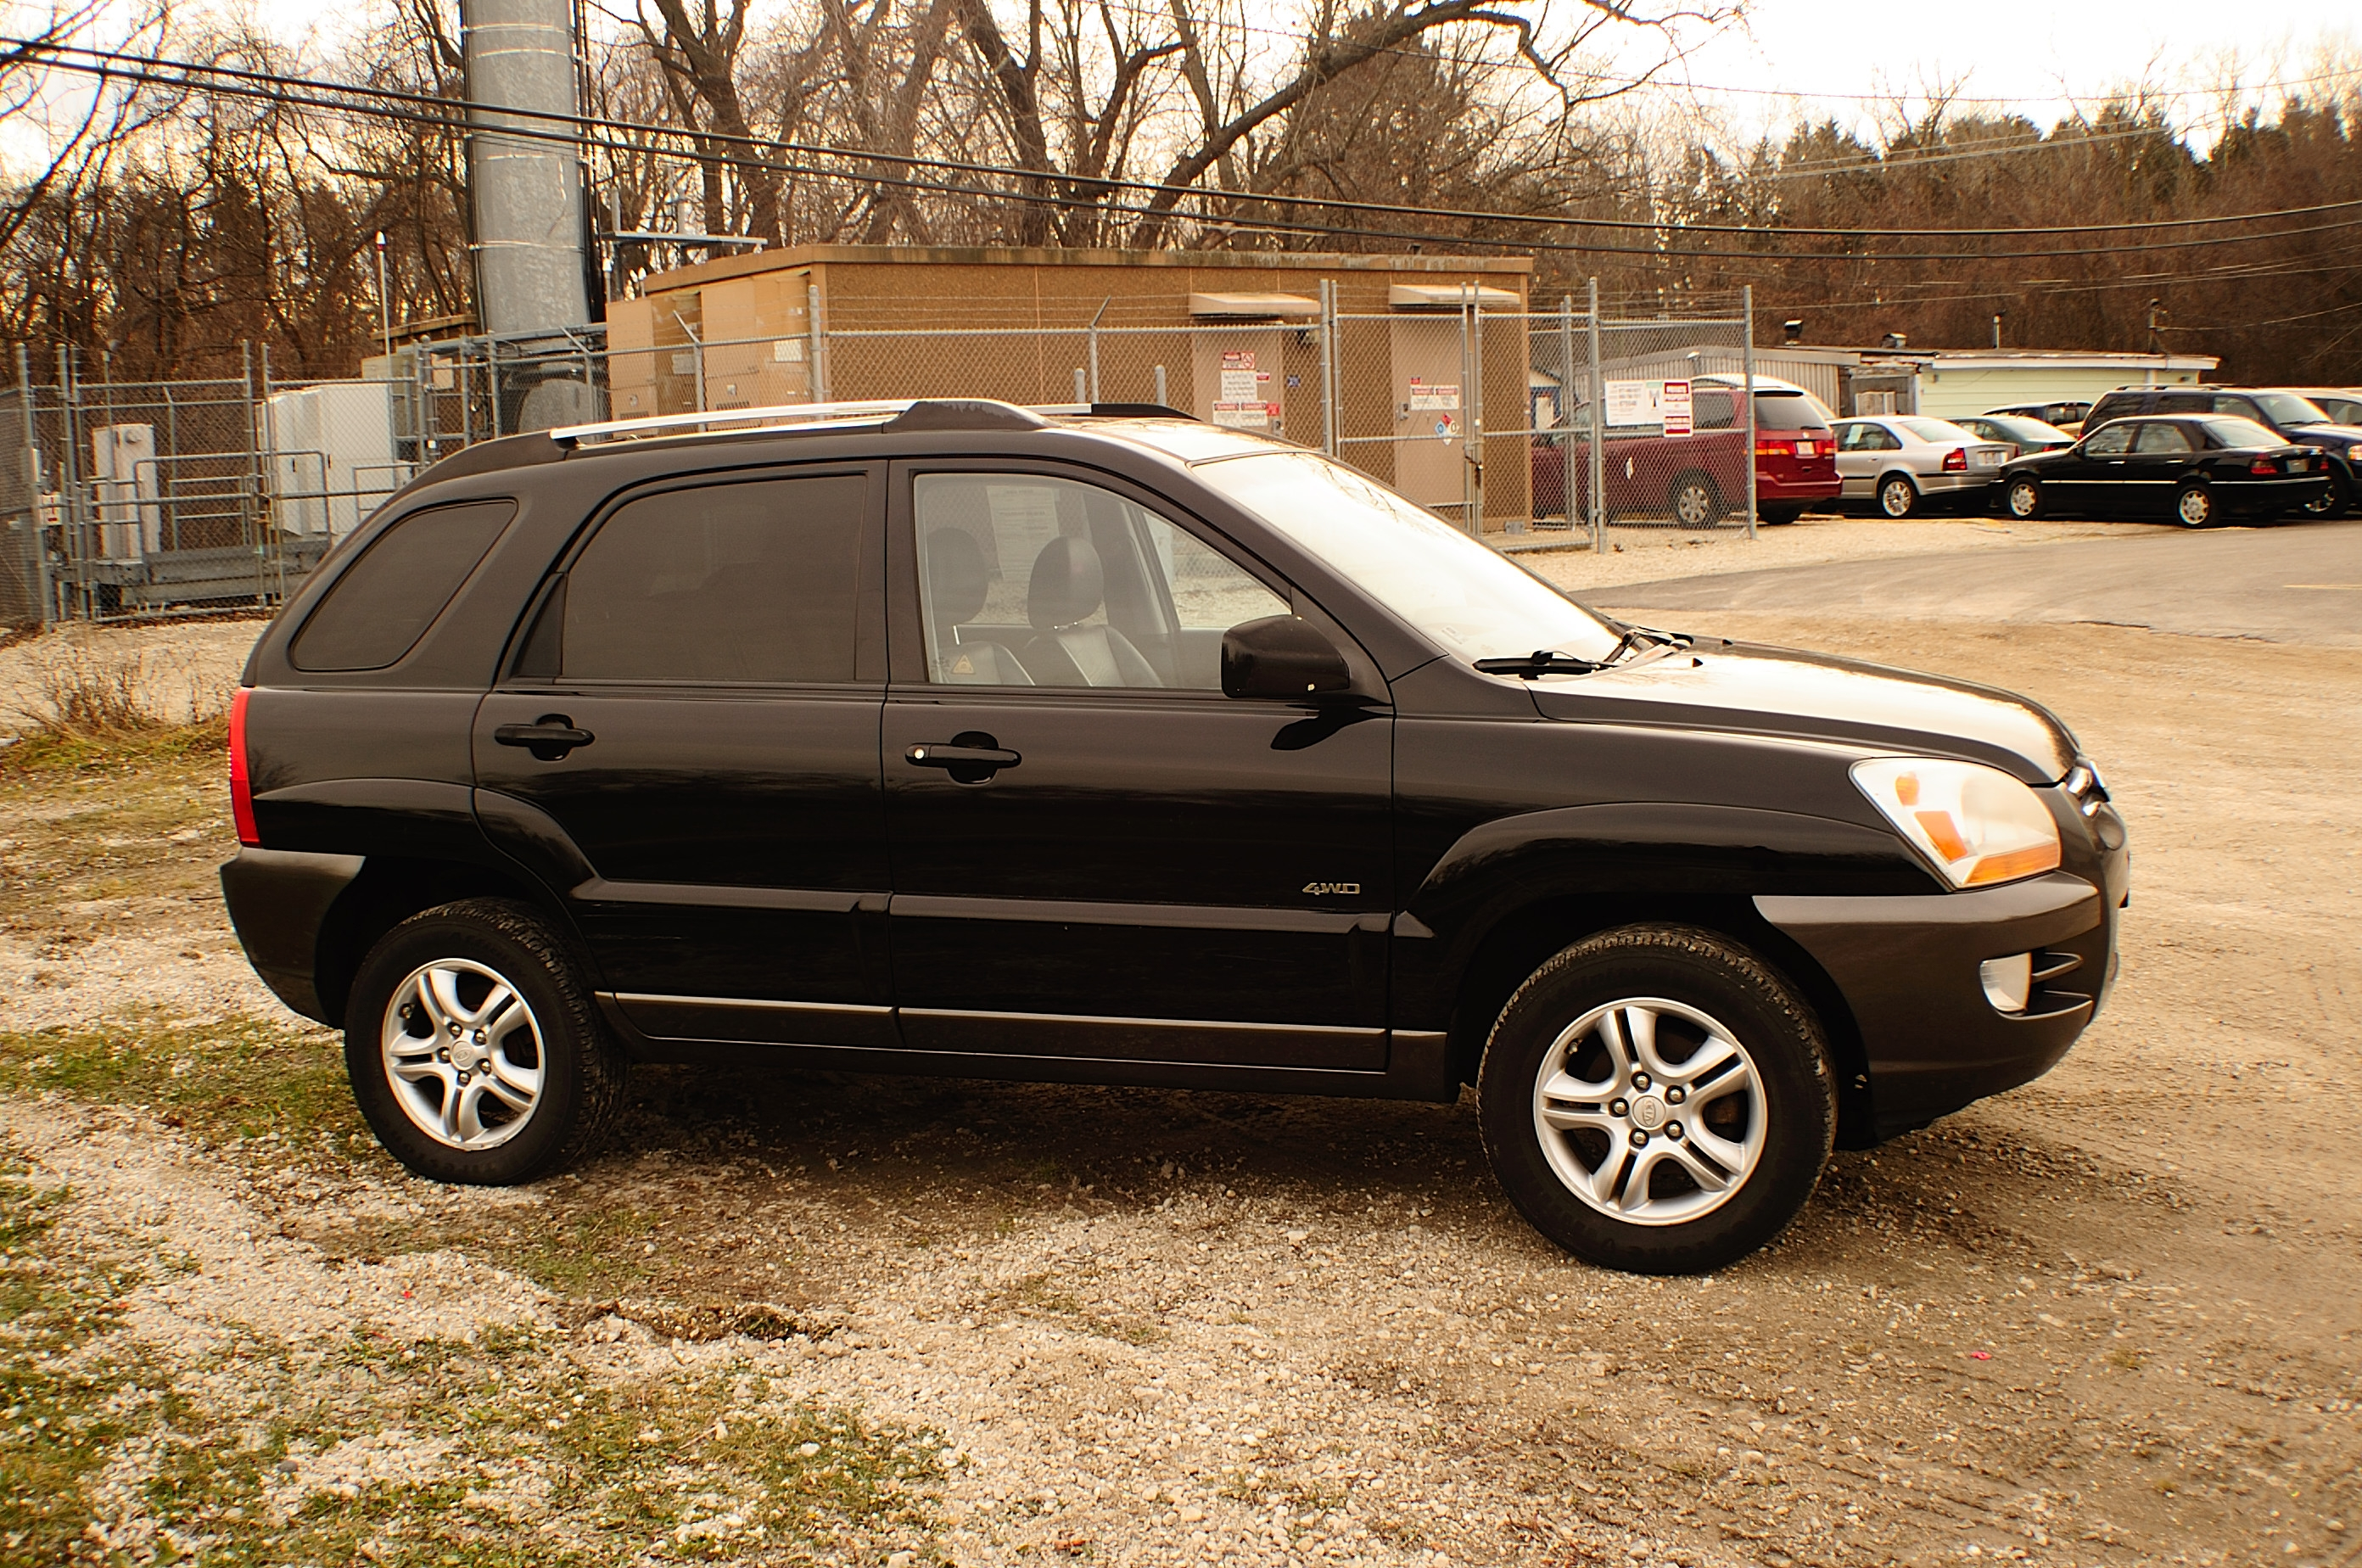 2005 kia sportage black ex 4x4 used suv sale. Black Bedroom Furniture Sets. Home Design Ideas